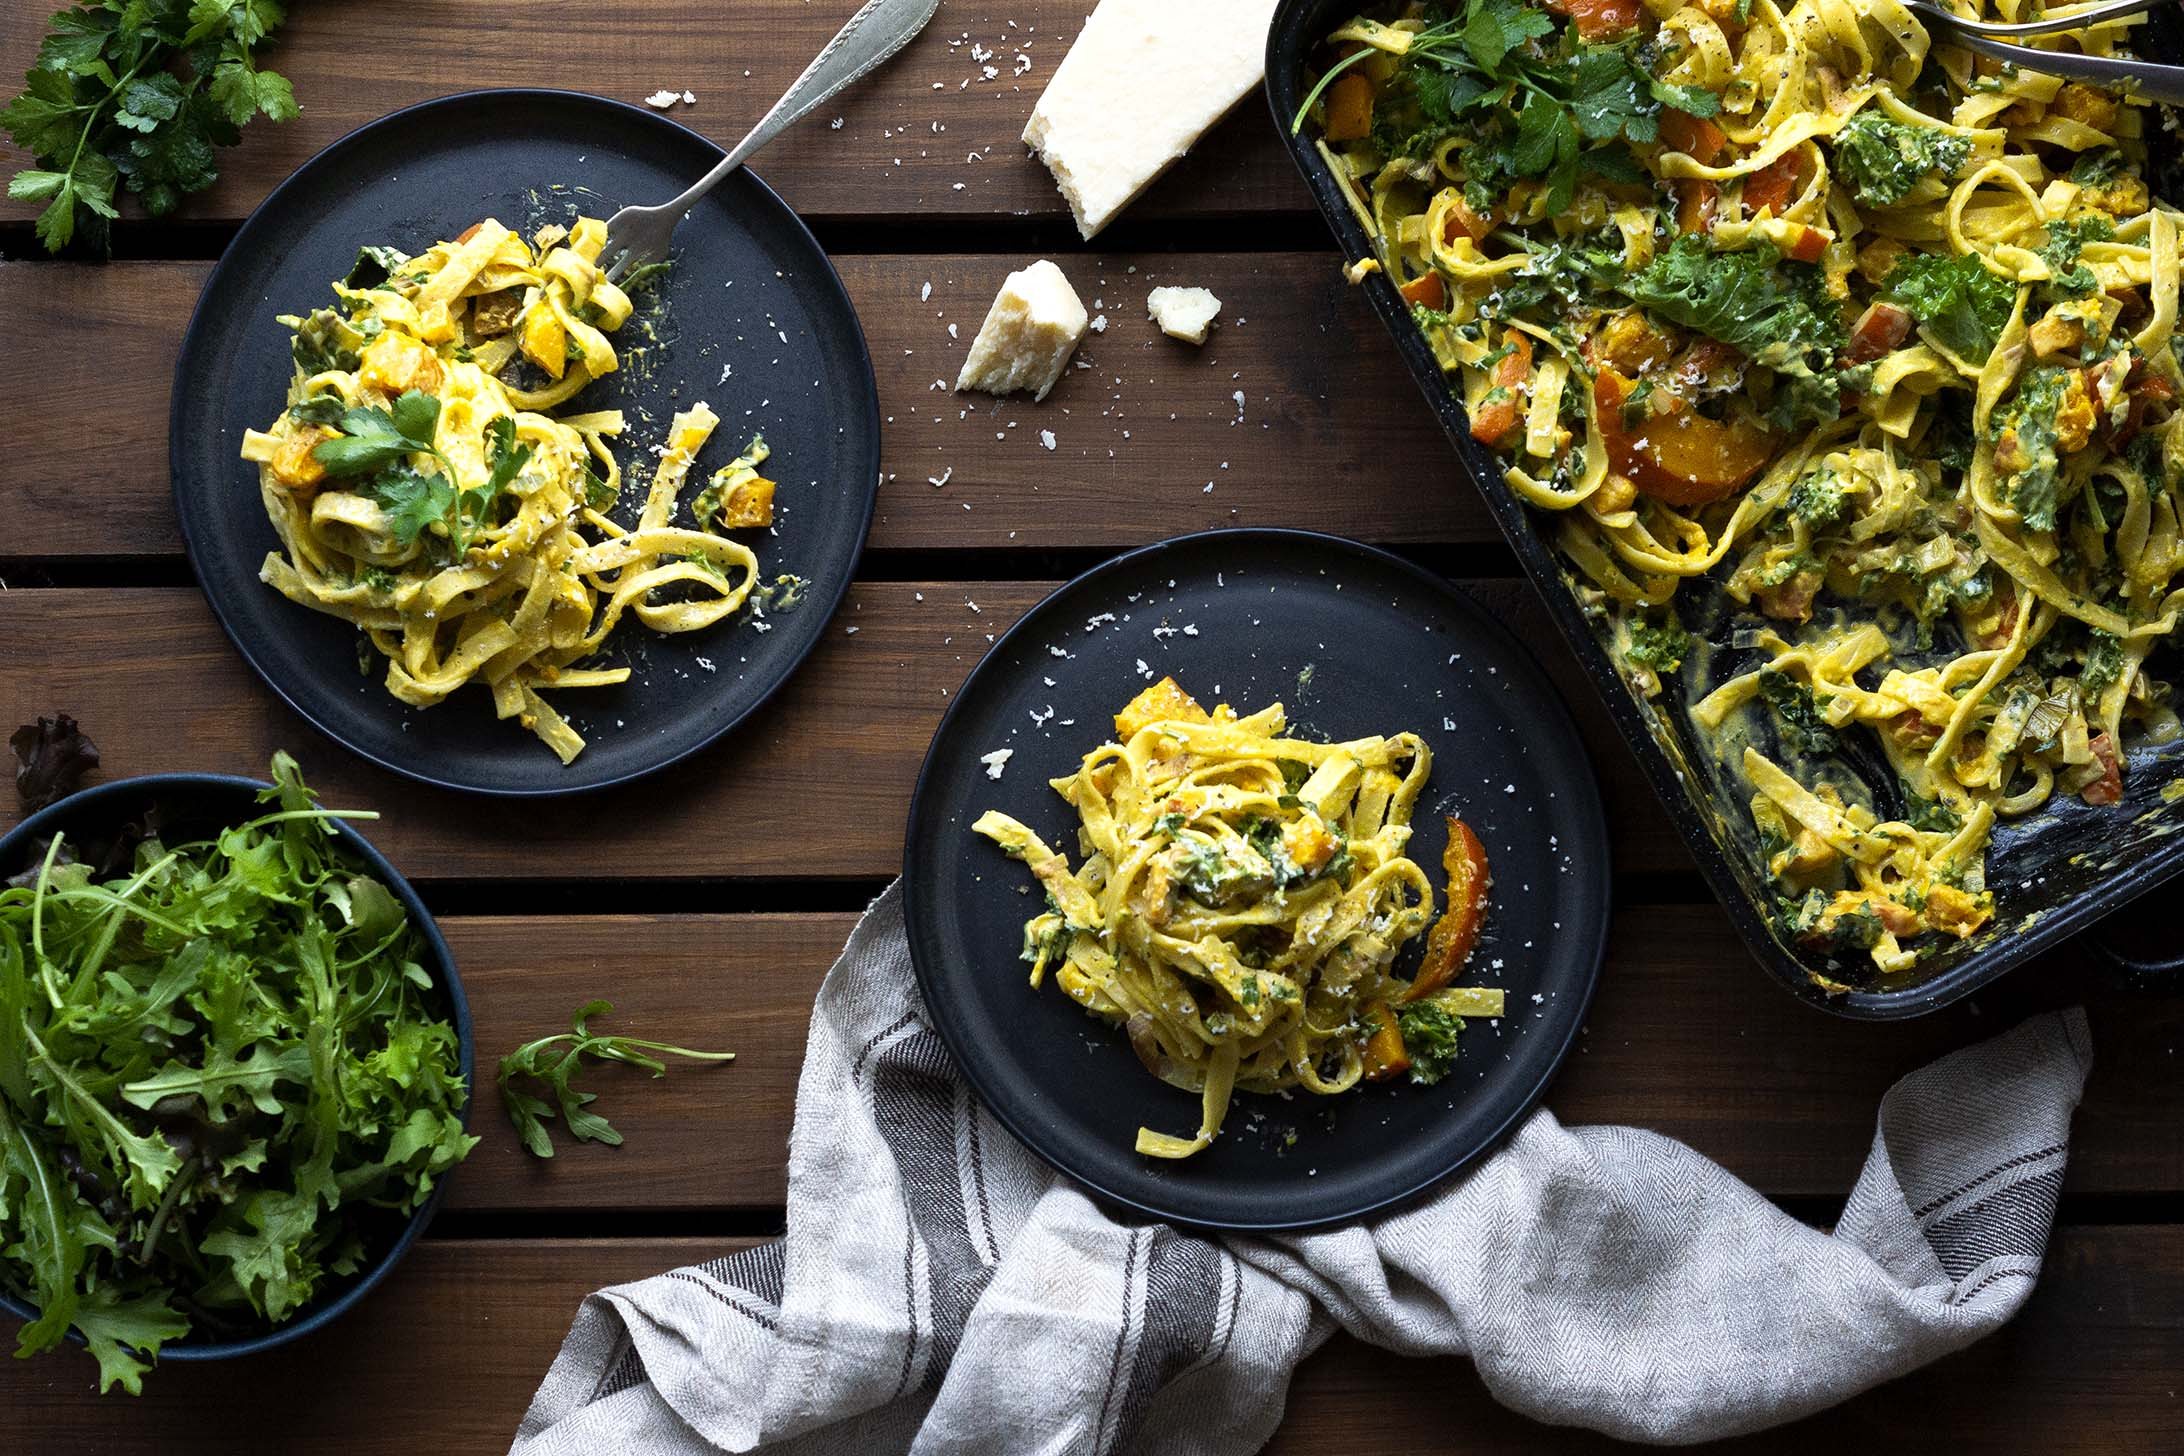 Roasted Hokkaido & Kale Fettuccine on two plates & in a baking dish